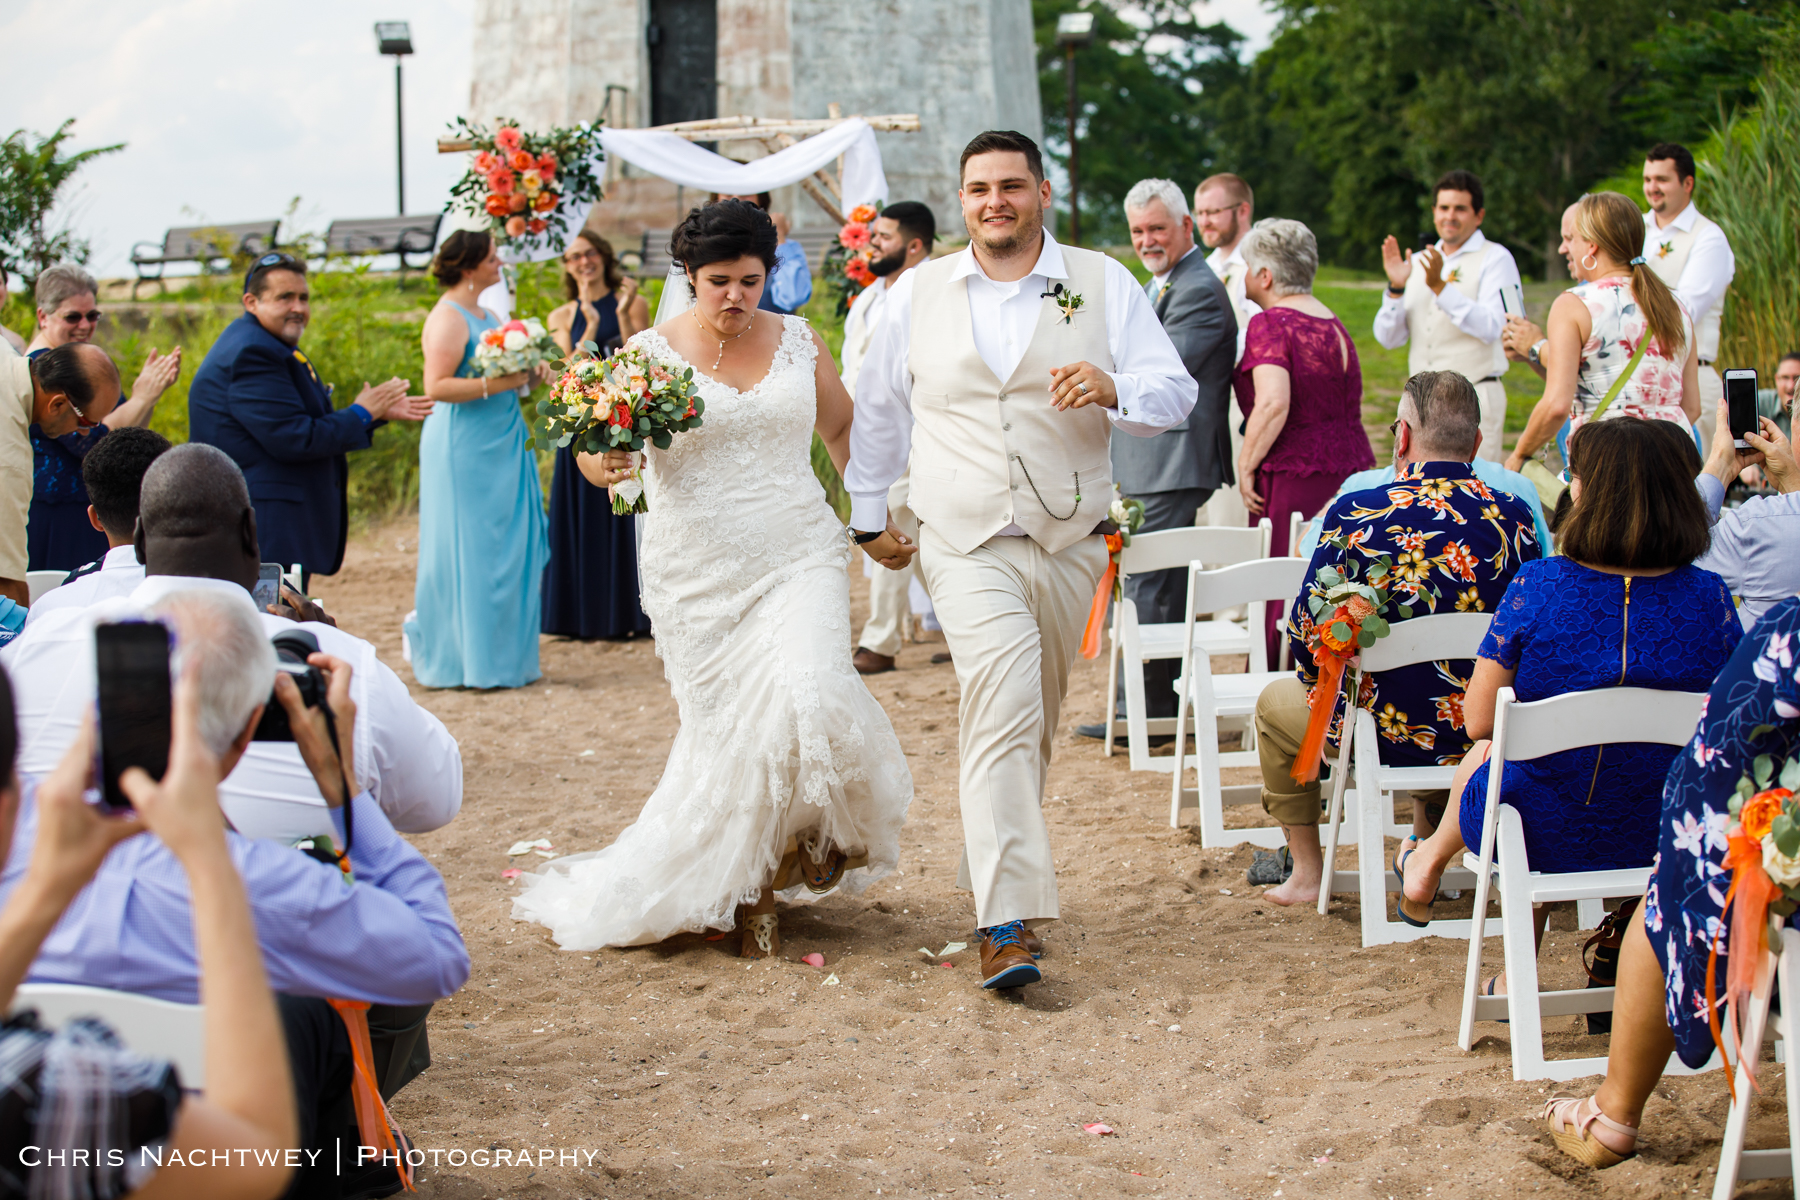 photos-wedding-lighthouse-point-park-carousel-new-haven-chris-nachtwey-photography-2019-29.jpg